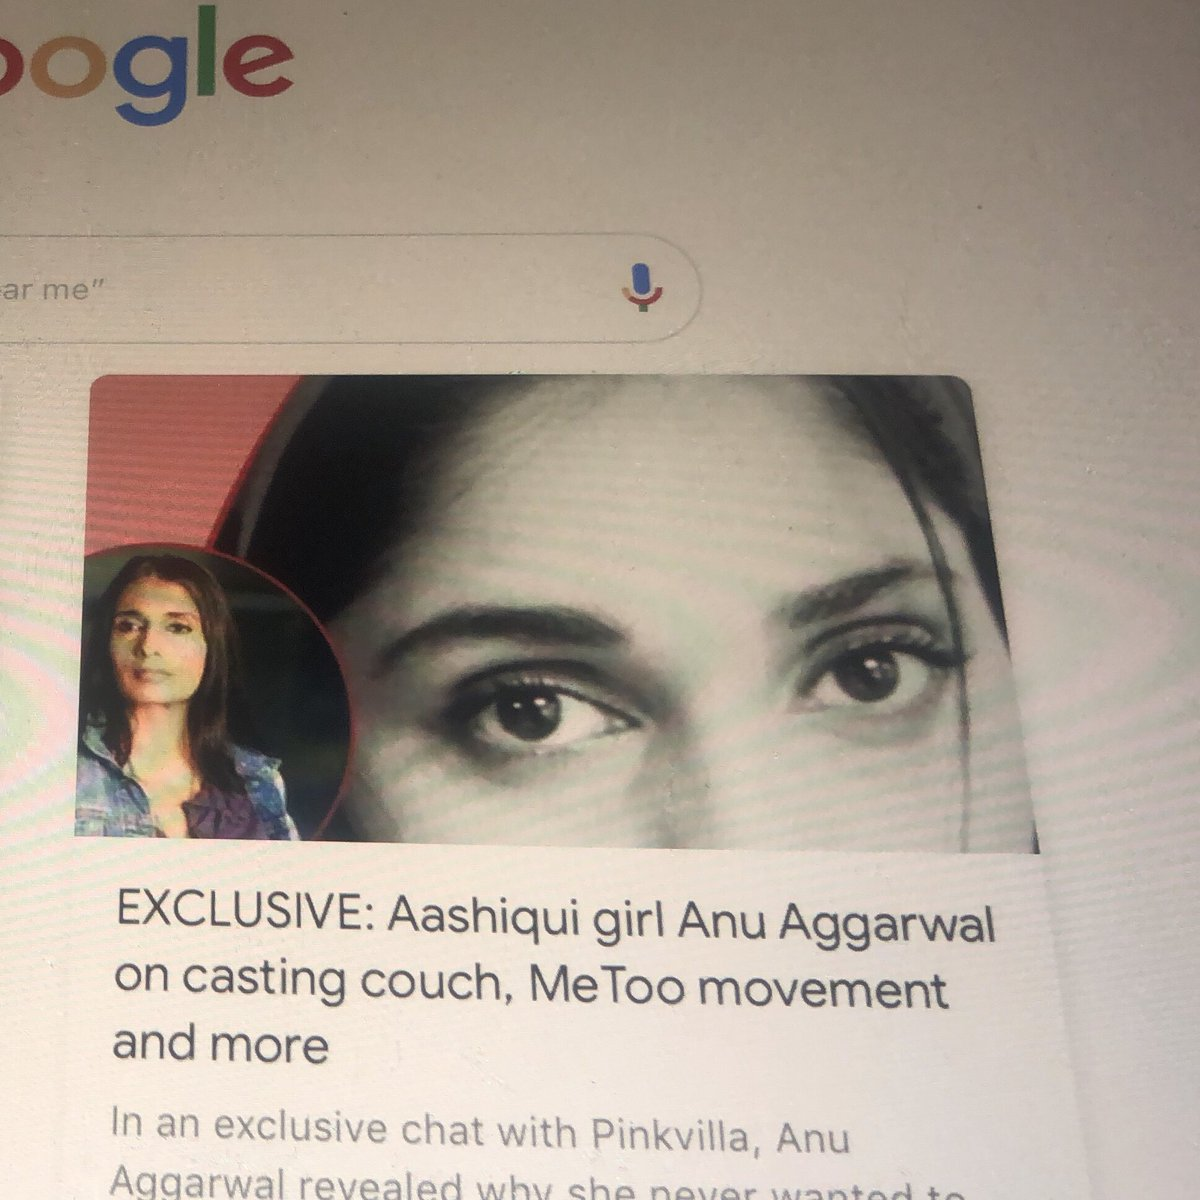 Express and act through your eyes your best weapon #EyeTwitter #anuaggarwal #actor #bollywood #aashiqui #supermodel #thursdaymorning #ThursdayThoughtspic.twitter.com/bnmu8KOJgX